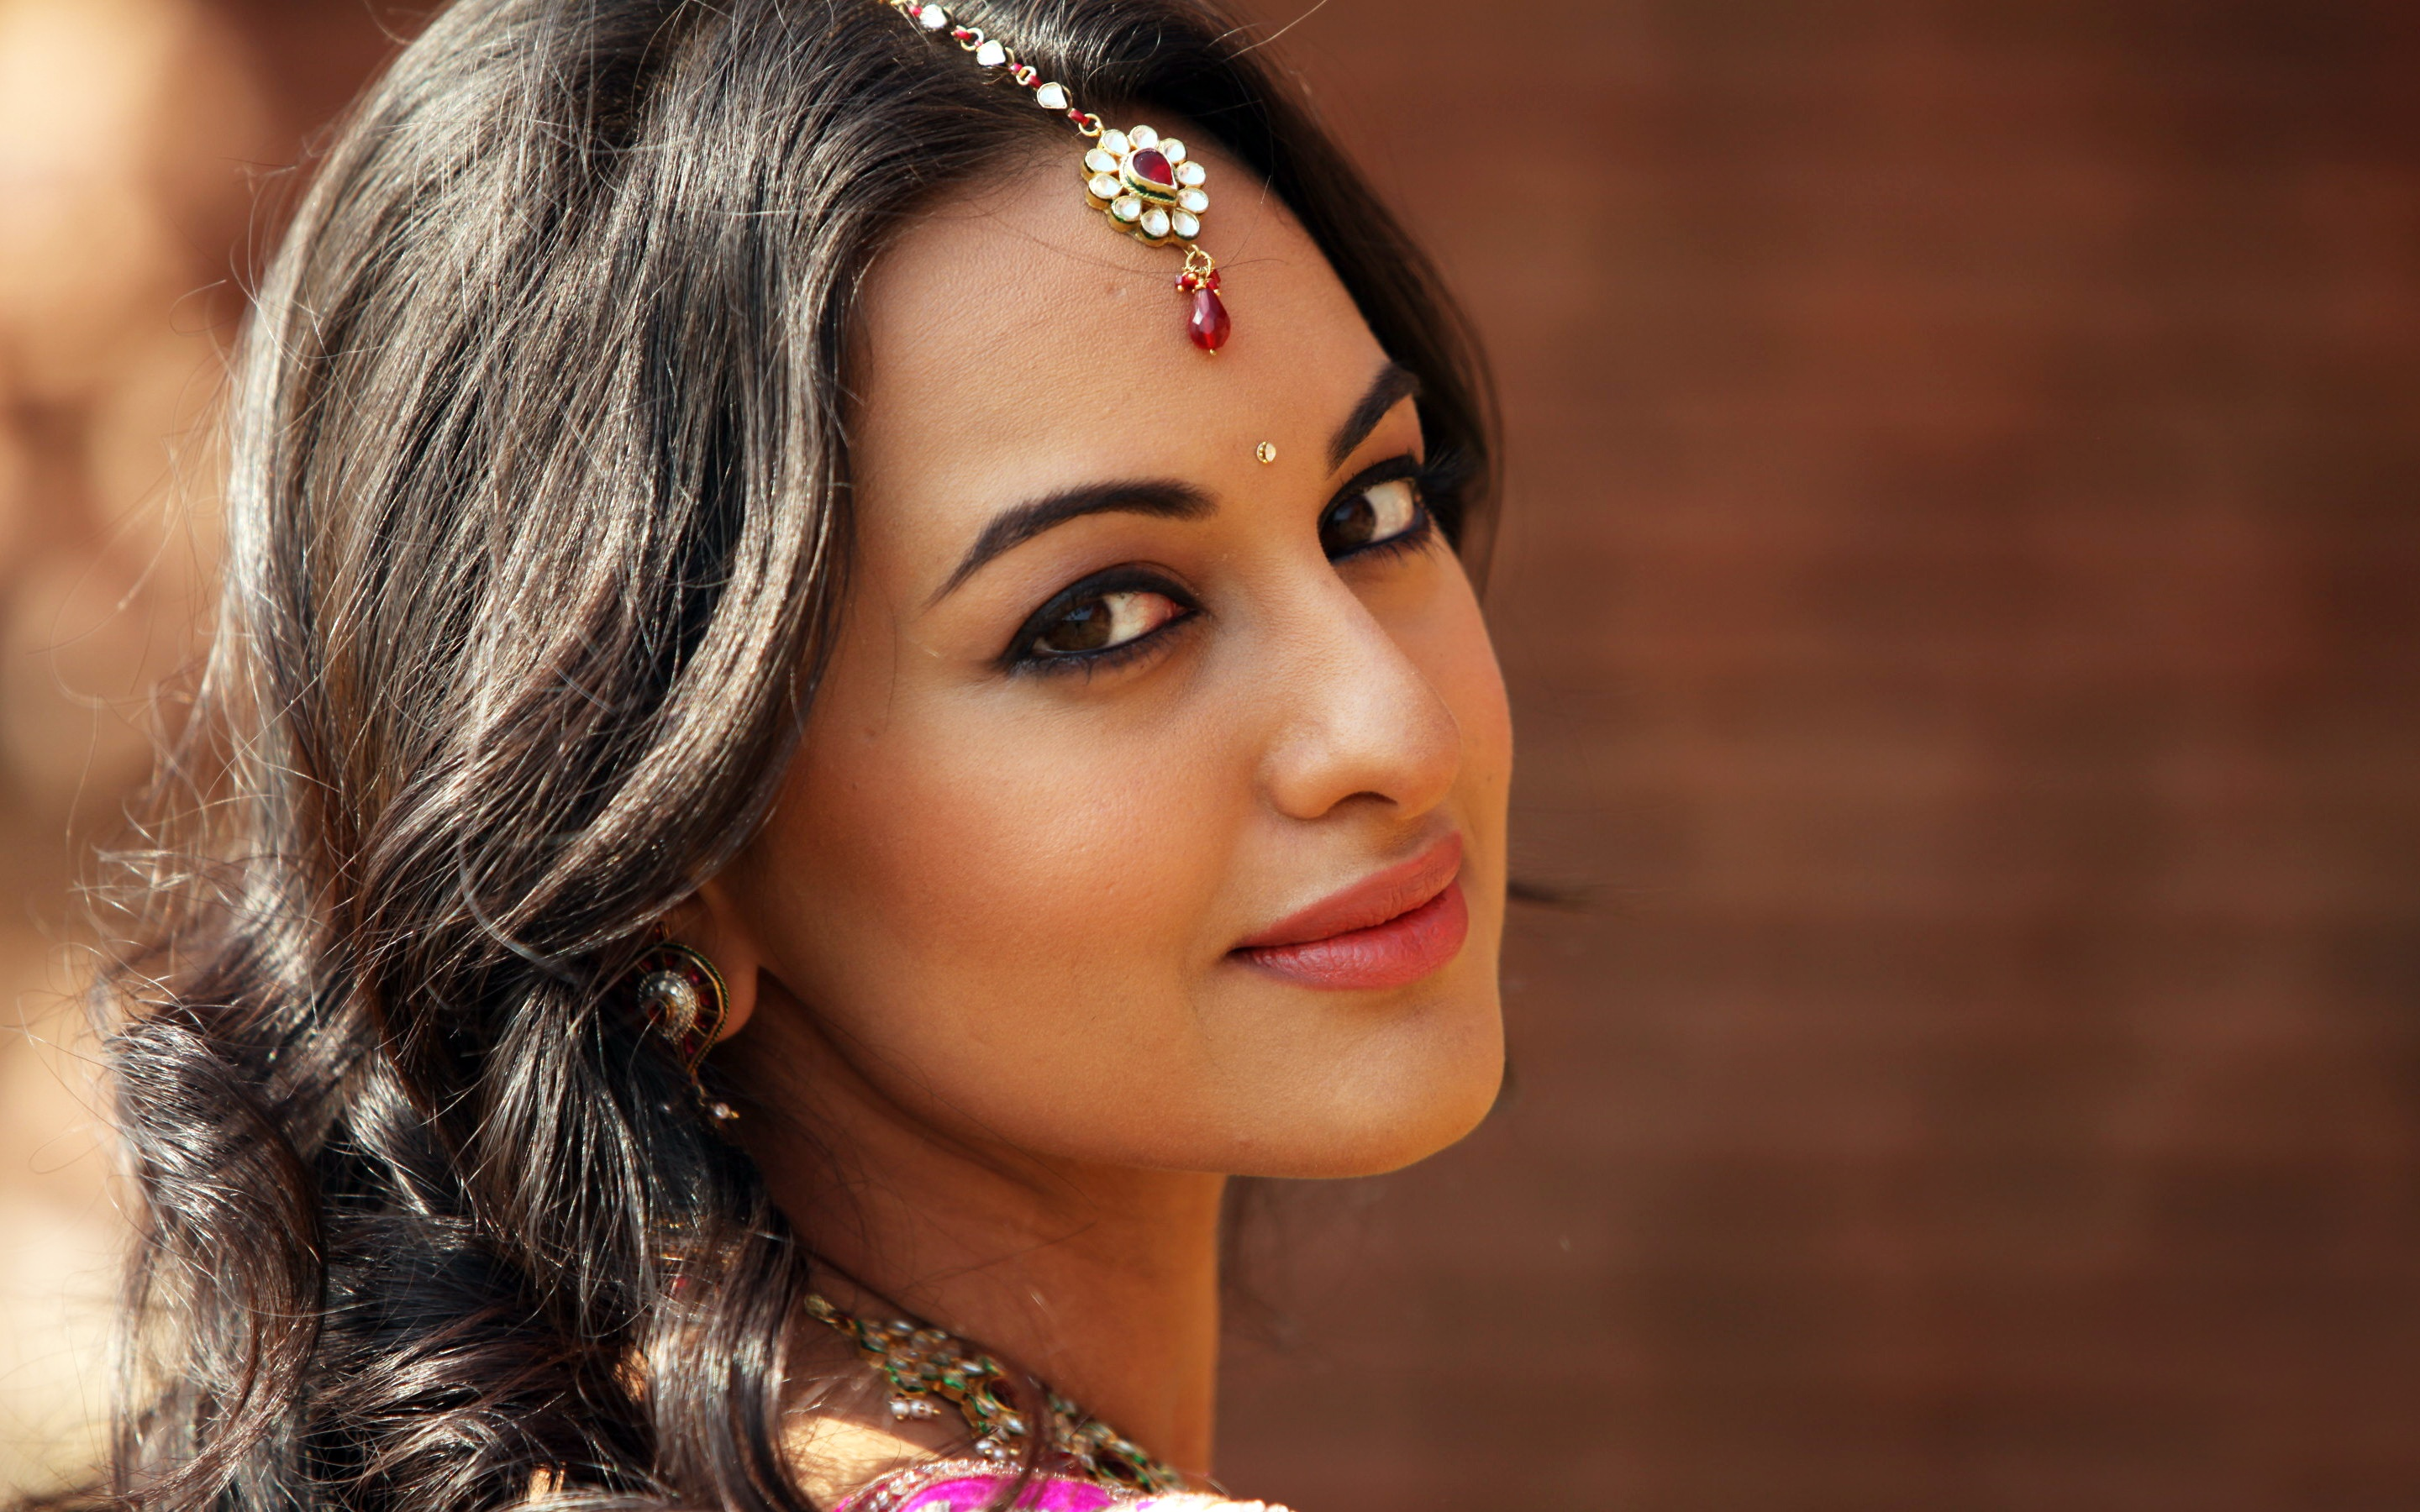 sonakshi sinha wallpapers in jpg format for free download